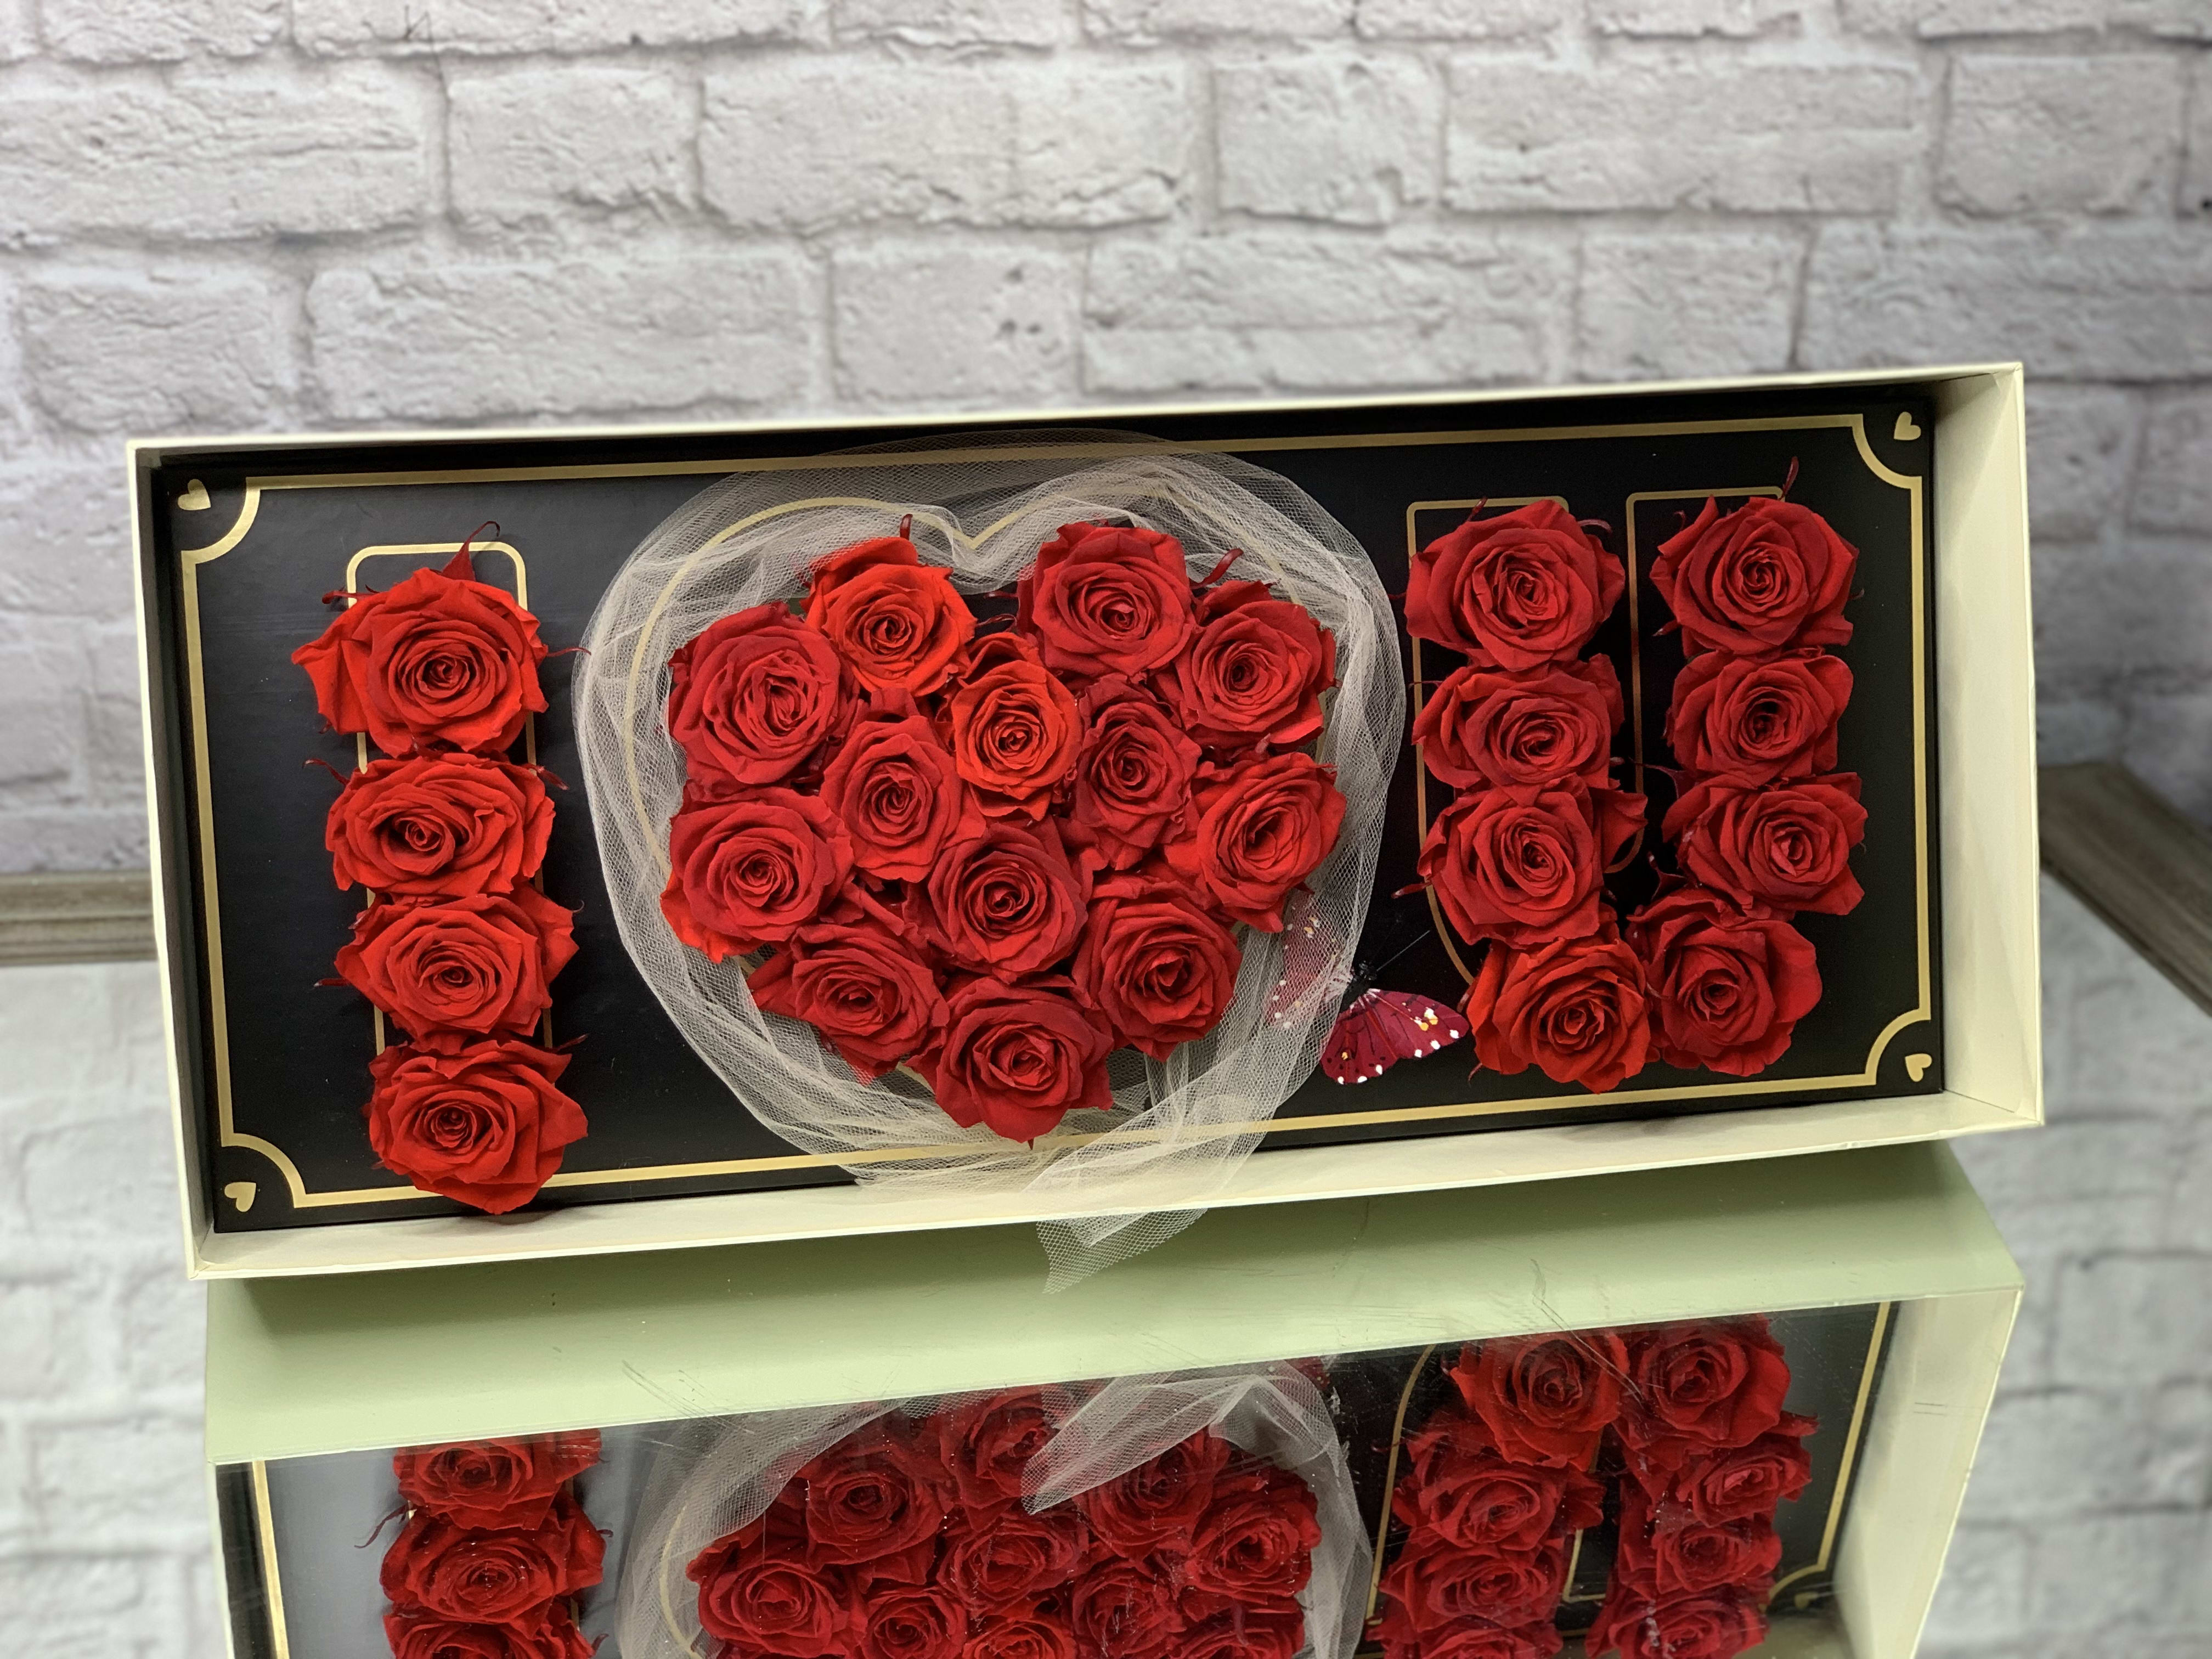 Preserved I Love You Red Rose Box Lasting 1 Year in North Miami, FL   Fleur Flower Boutique